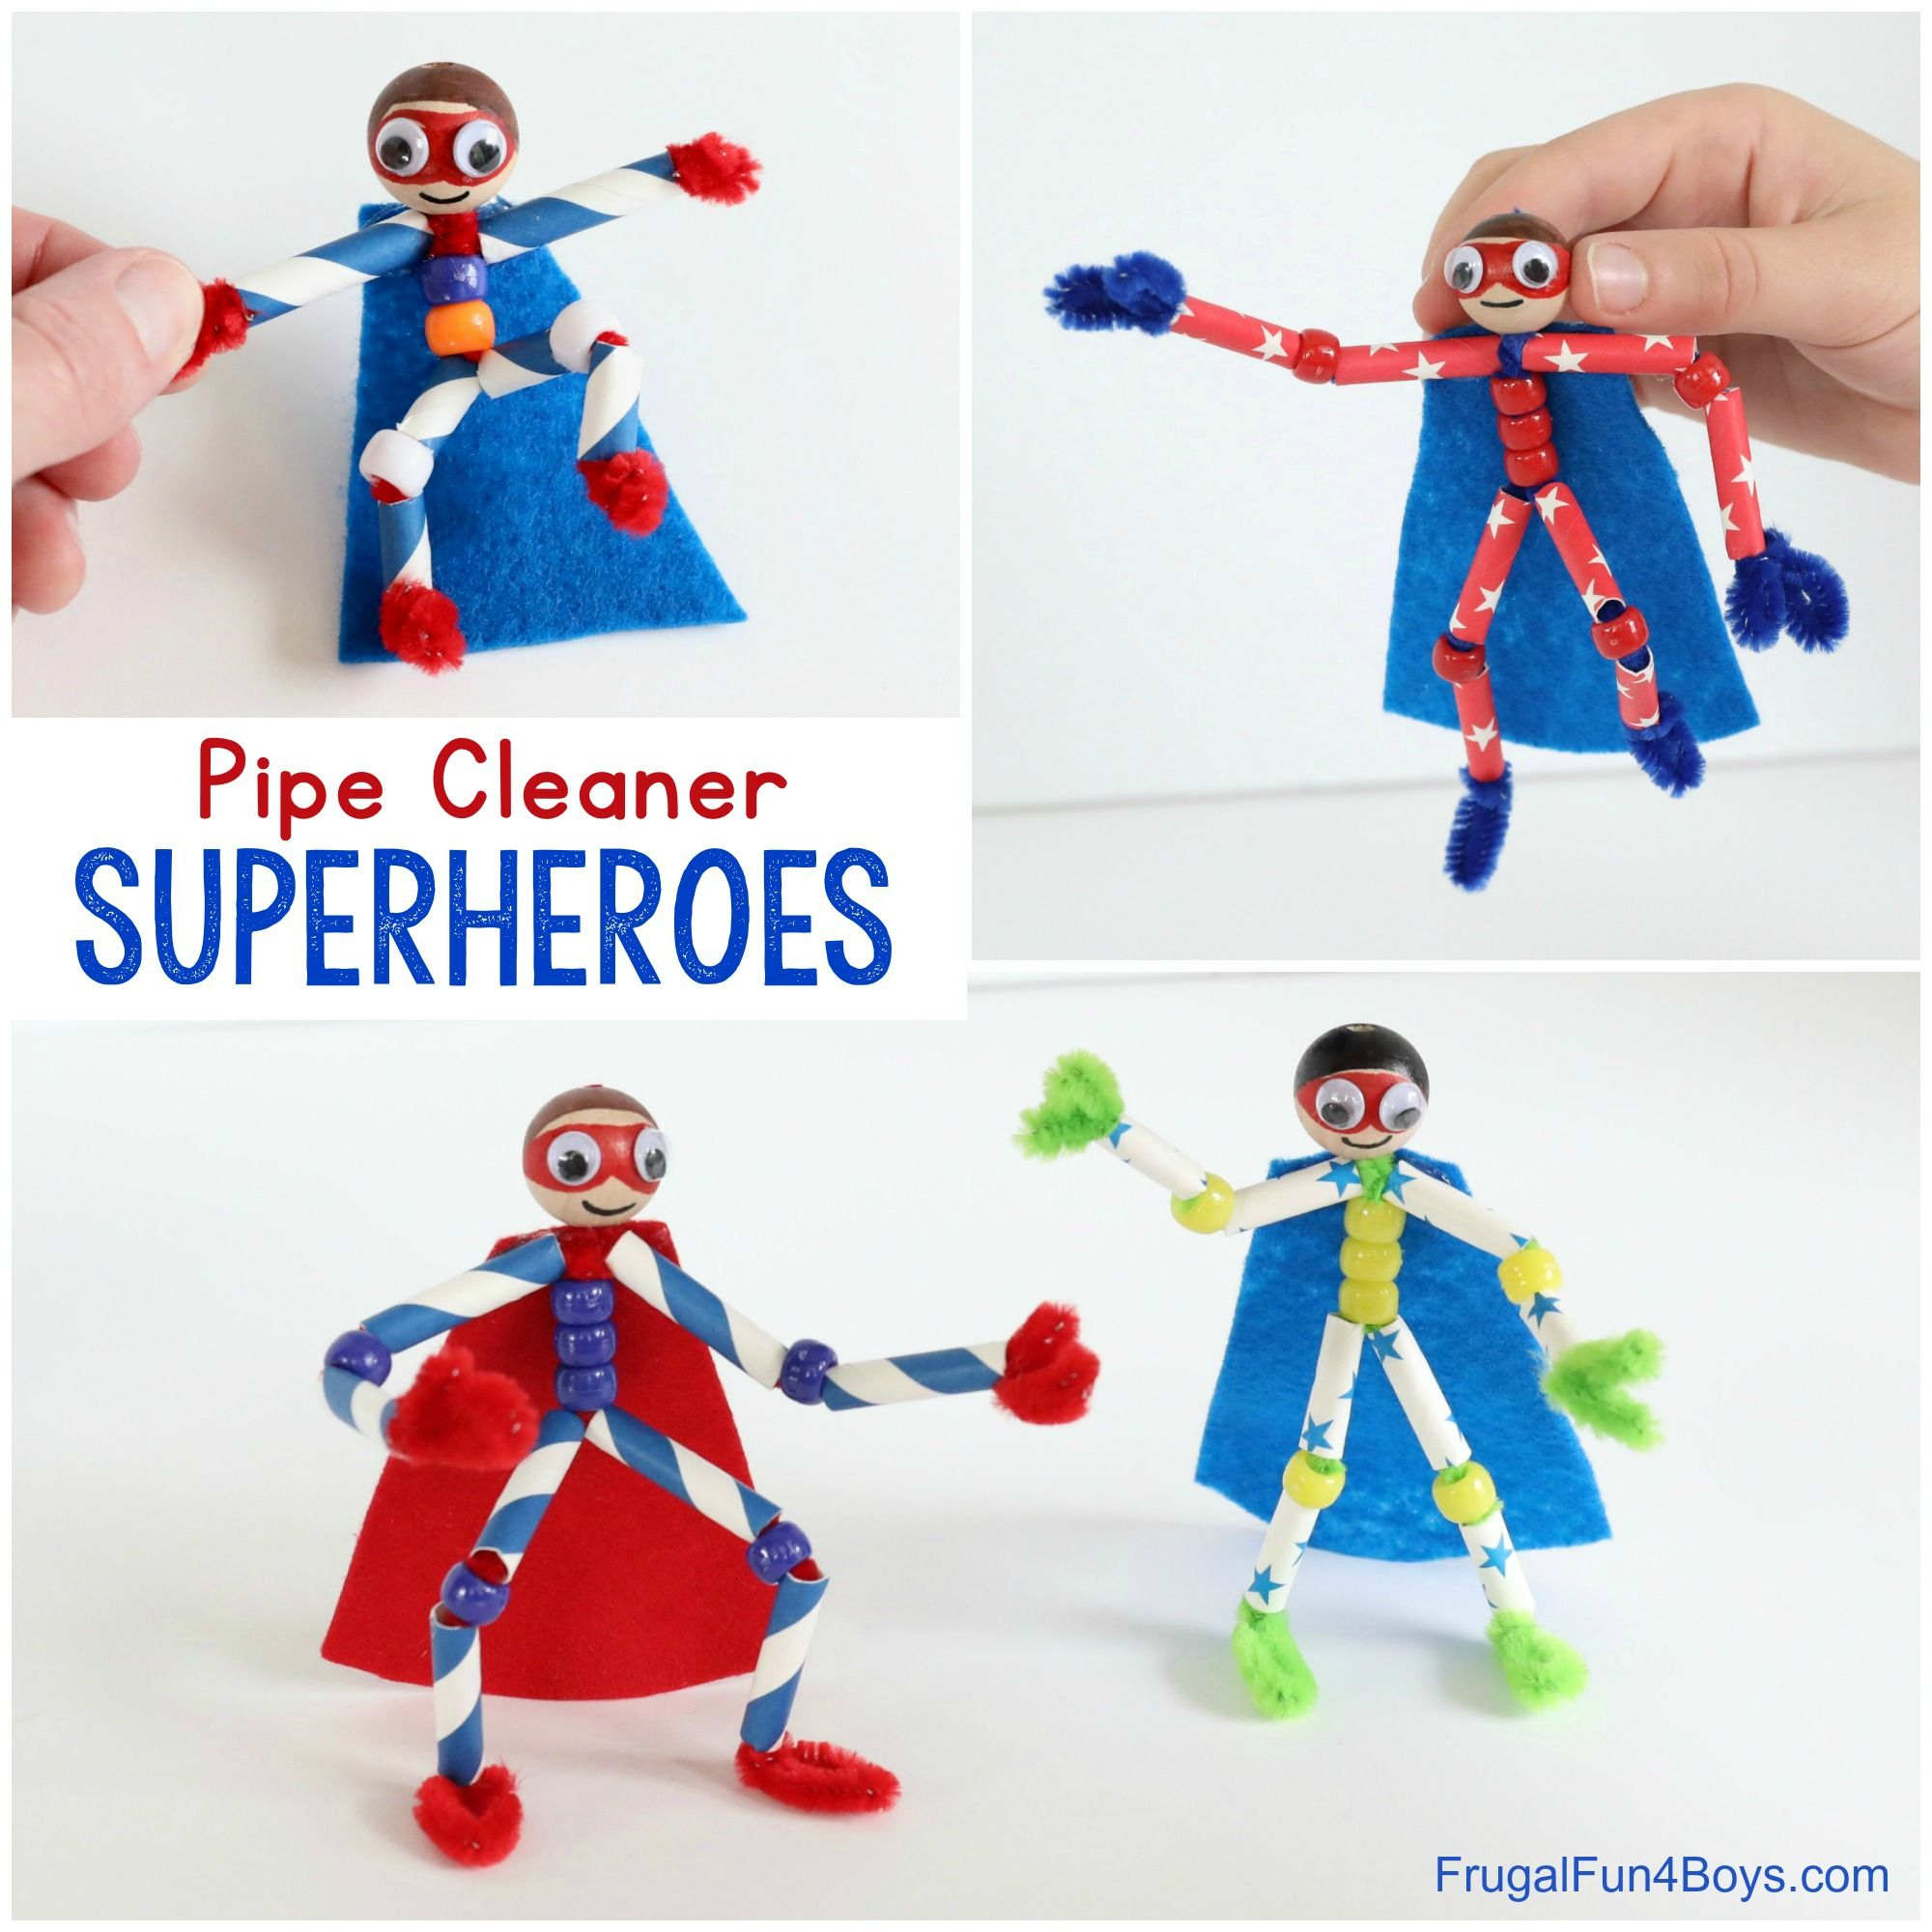 How to Make Pipe Cleaner Superheroes - Frugal Fun For Boys and Girls #superherocrafts